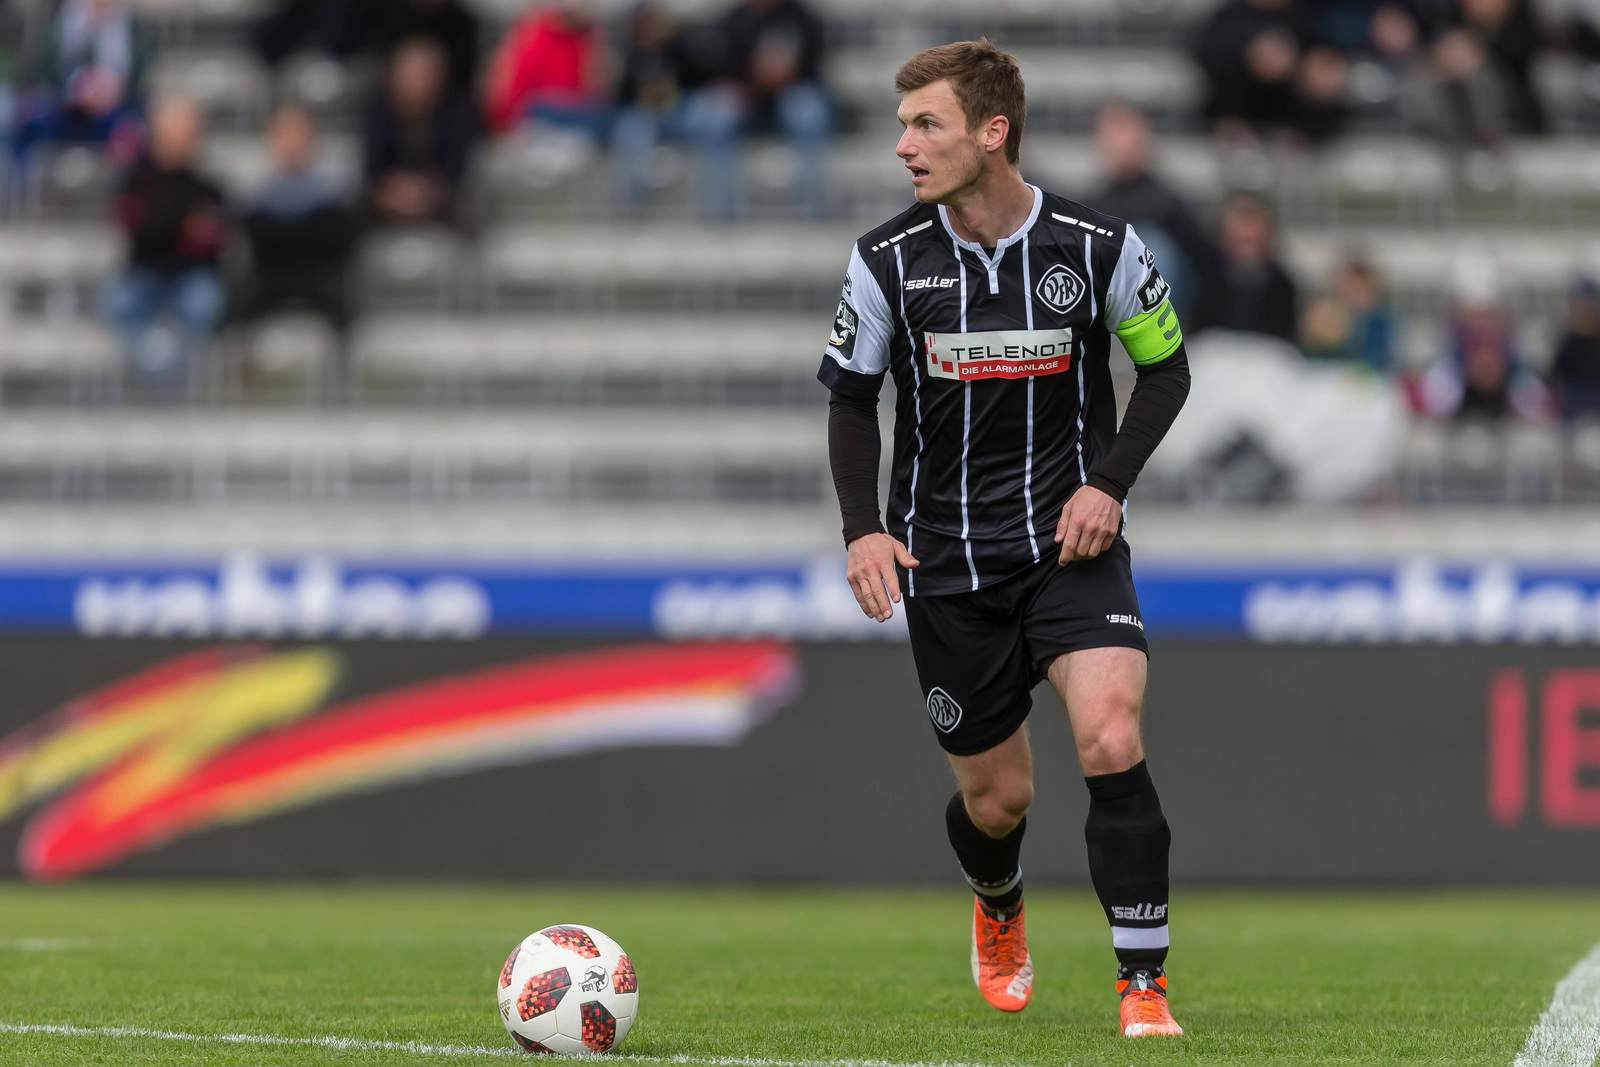 Thomas Geyer am Ball für den VfR Aalen